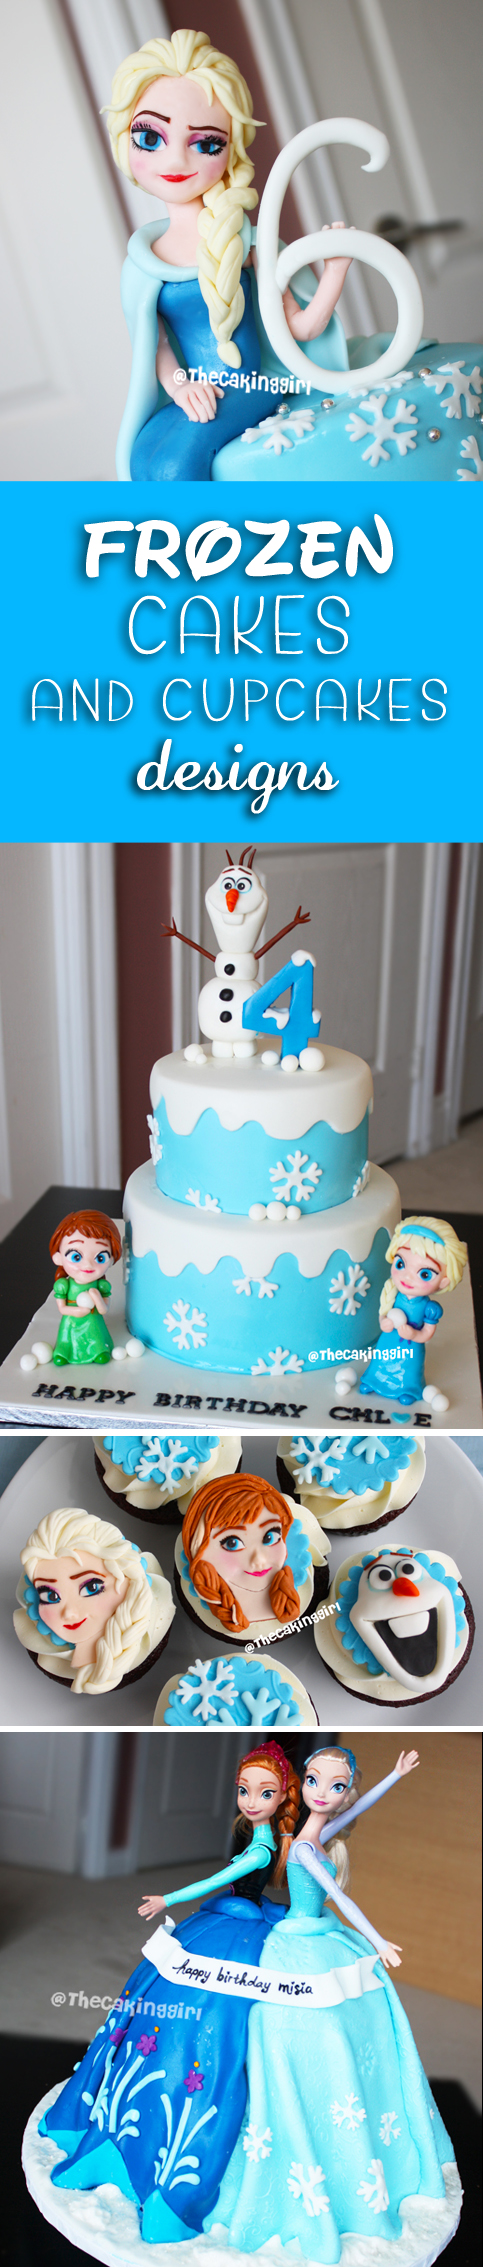 Disney Frozen Custom Cake and Cupcake Designs with edible Olaf